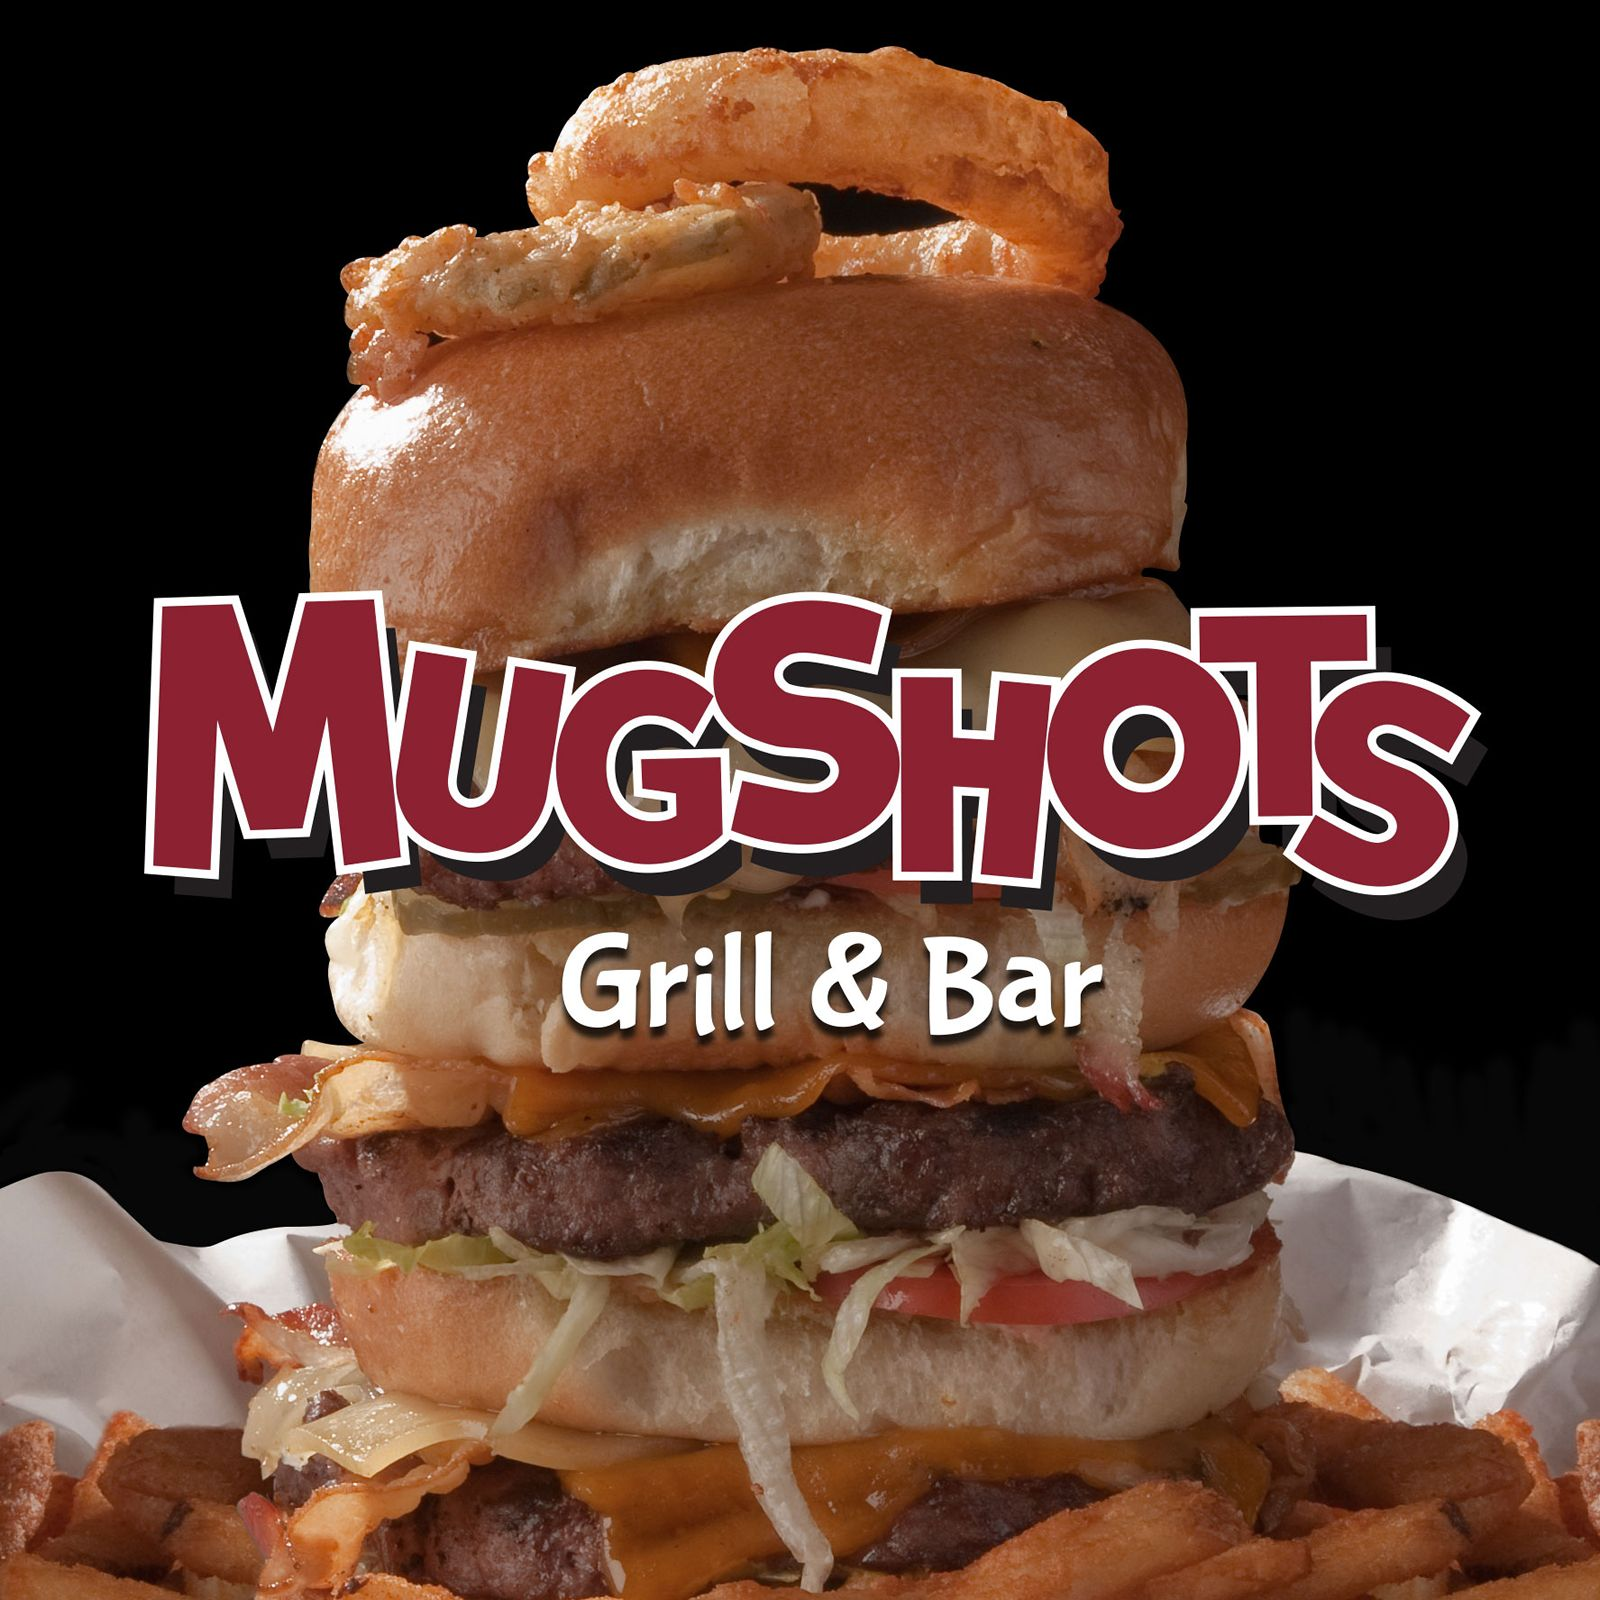 Mugshots Grill & Bar Announces Acquisition